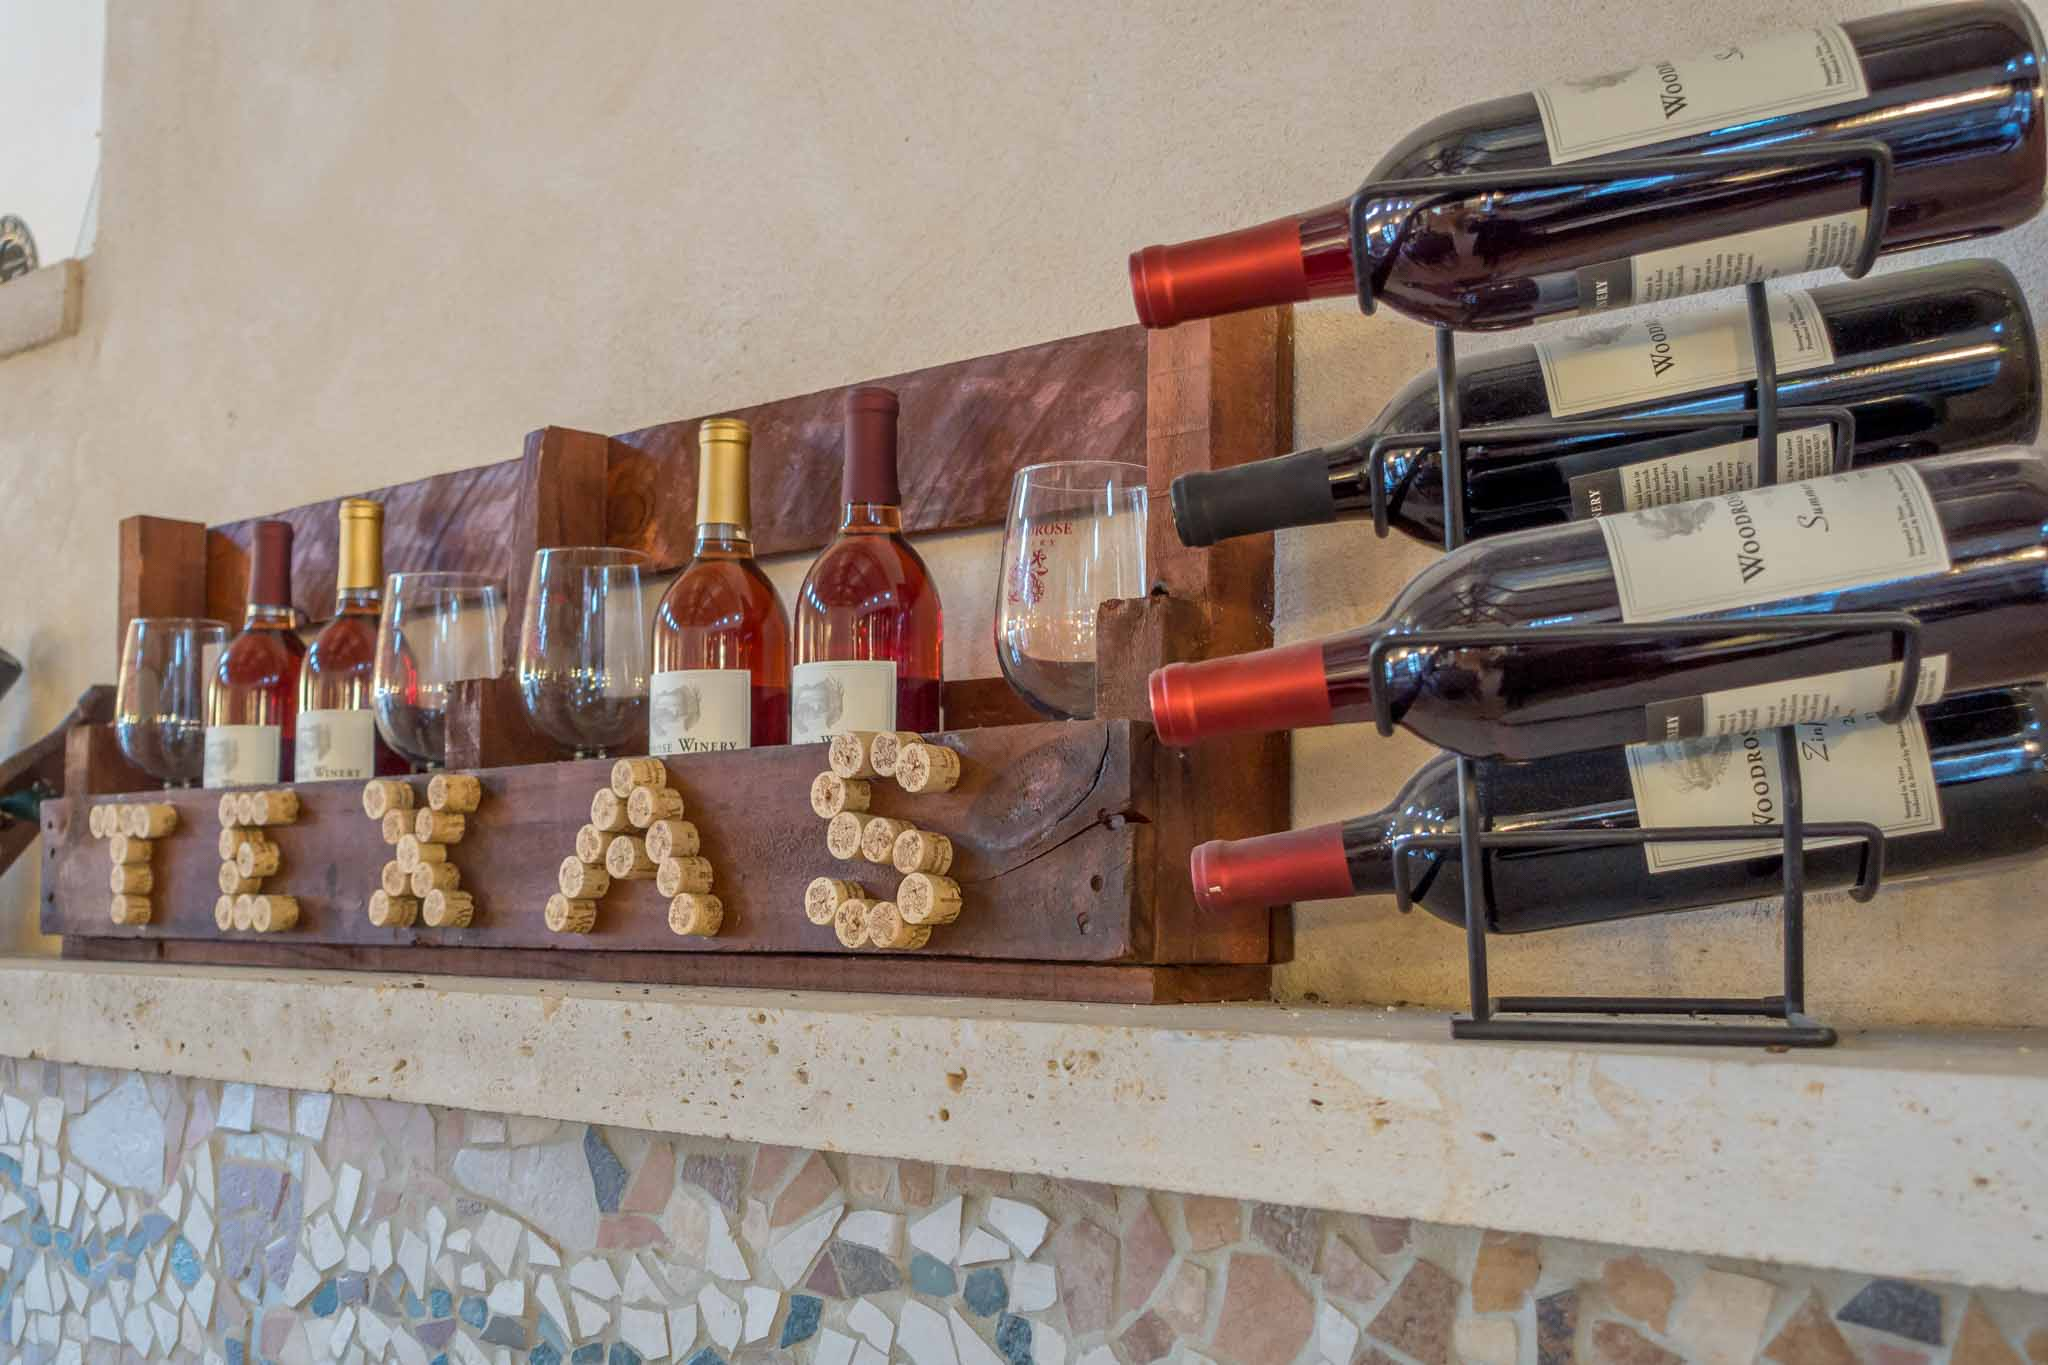 Display of wine bottles, glasses, and corks